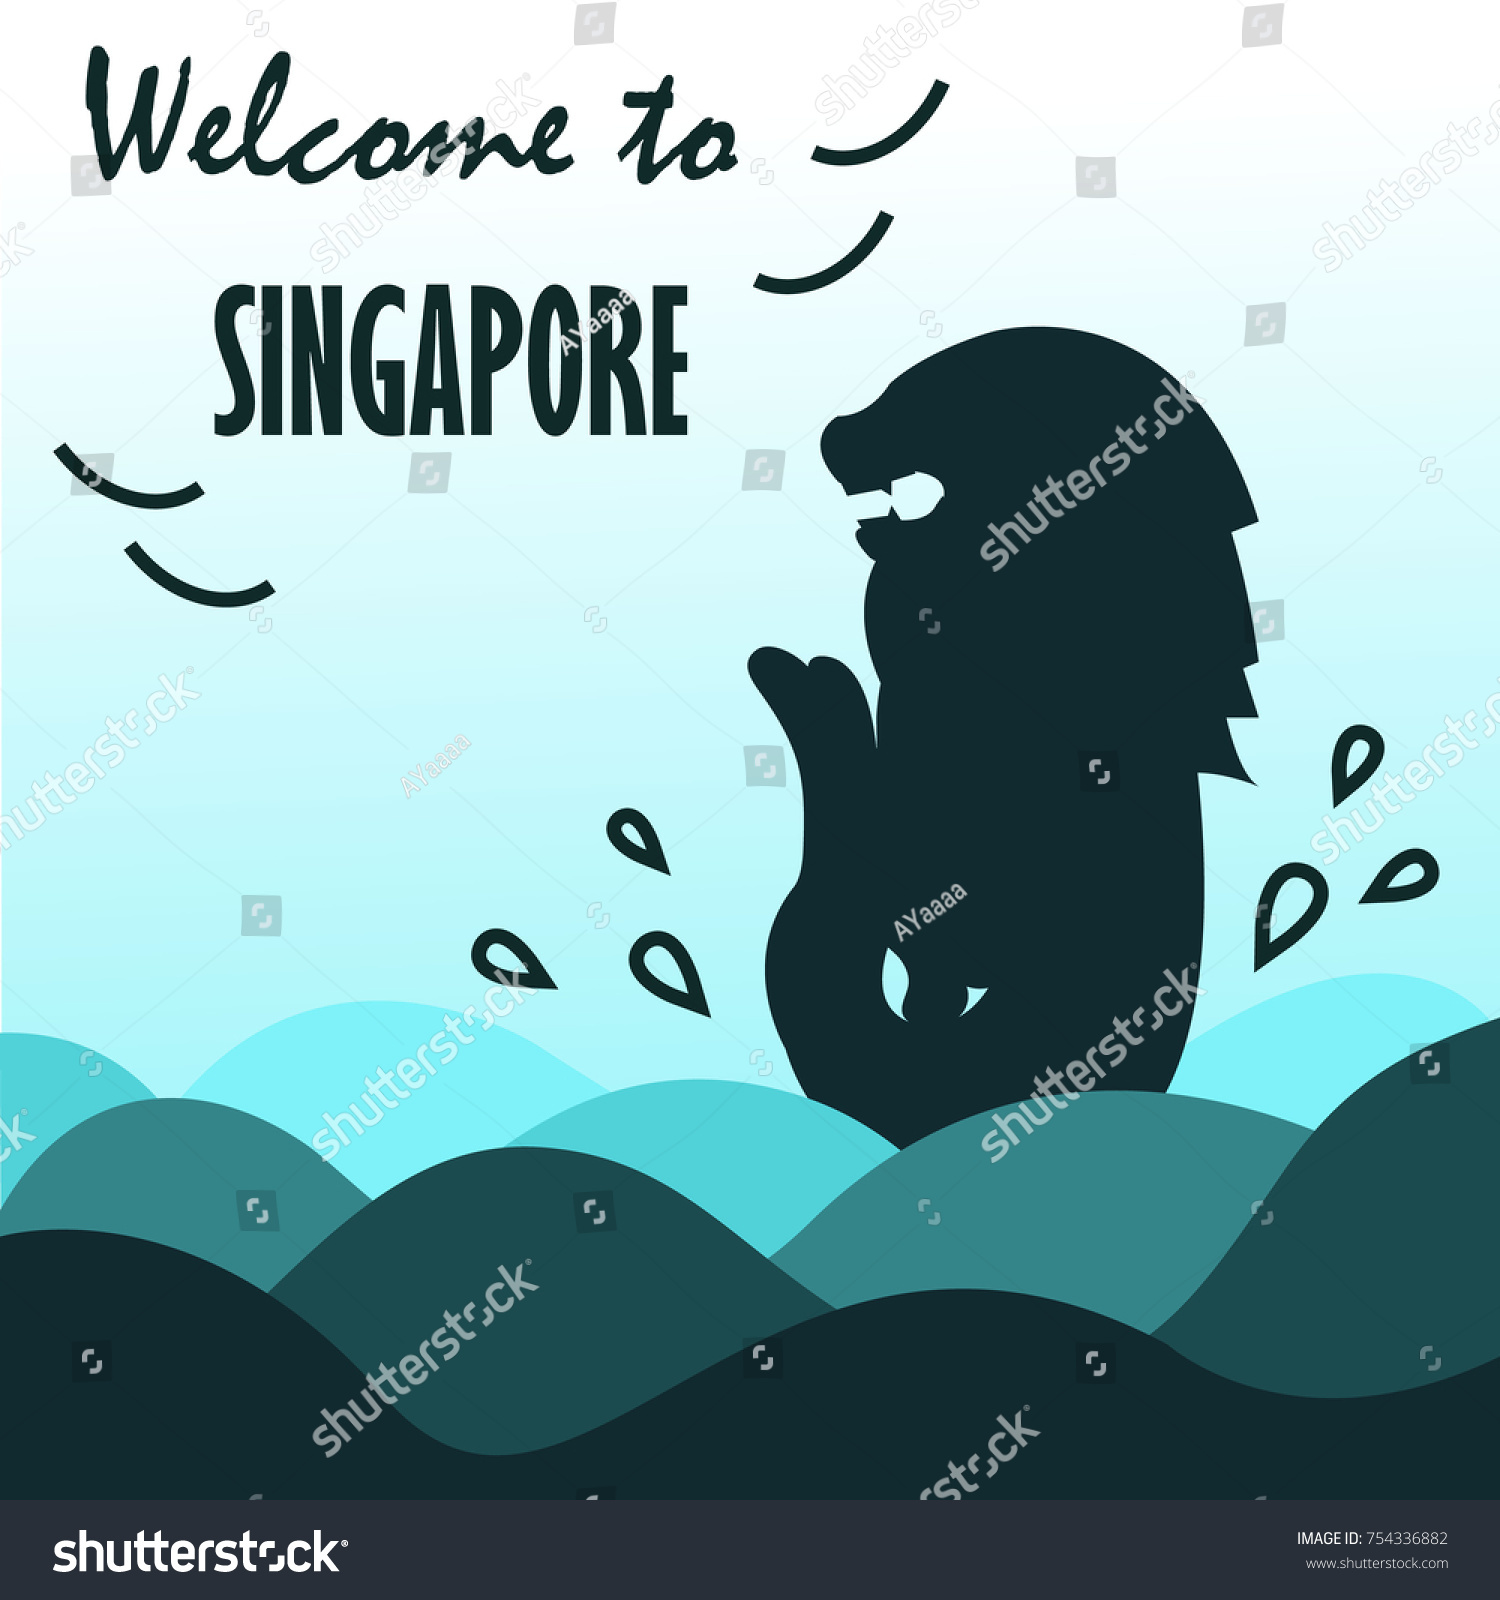 Symbol welcome singapore turquoise silhouette concept stock vector symbol of welcome to singapore with turquoise silhouette concept illustration biocorpaavc Gallery